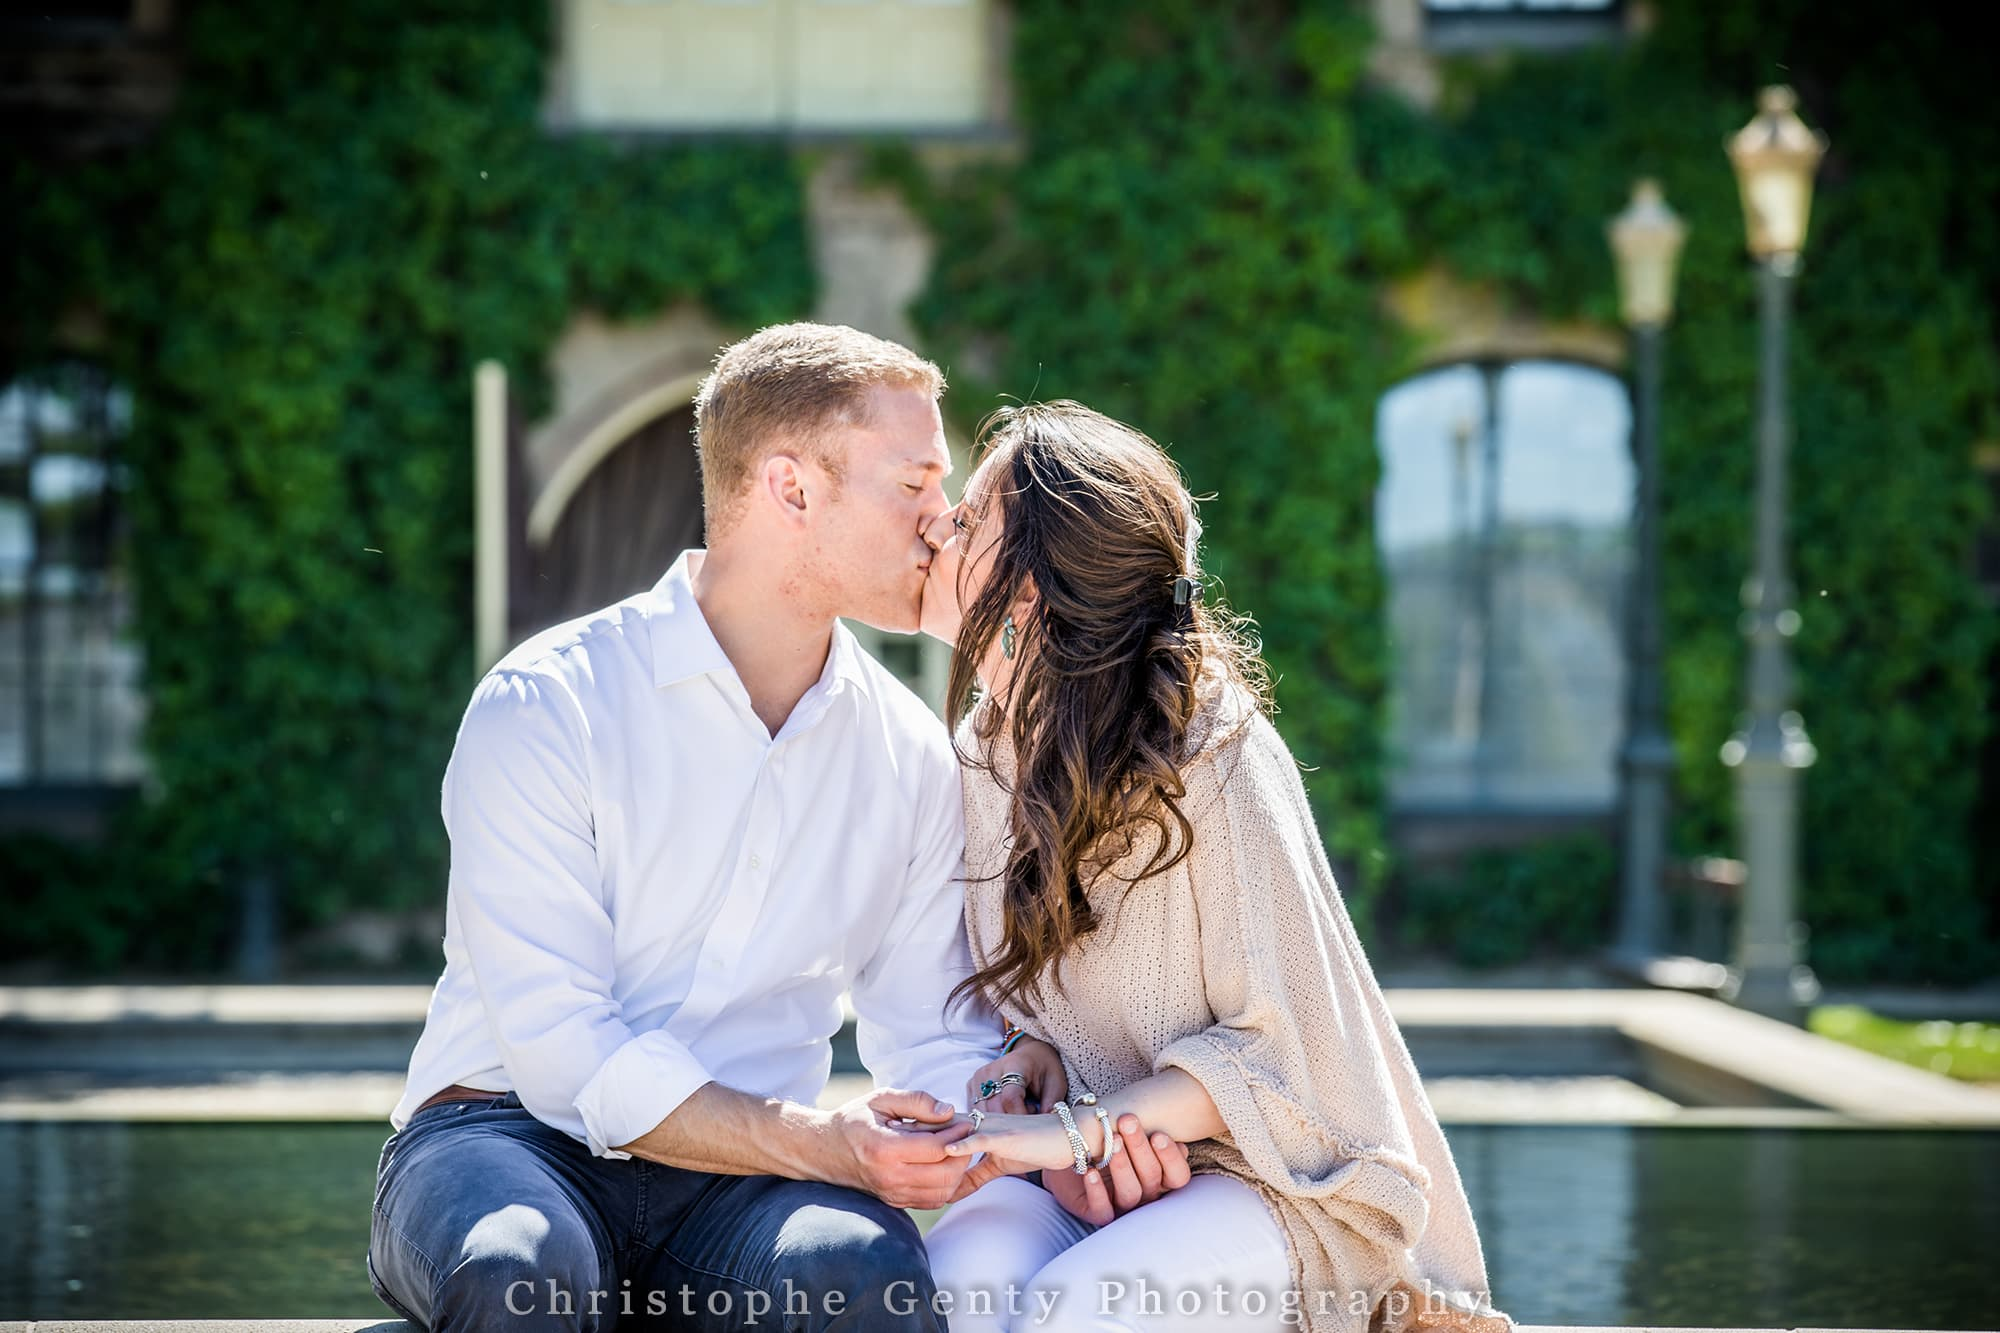 Proposal Photography at Inglenook Winery in Rutherford CA